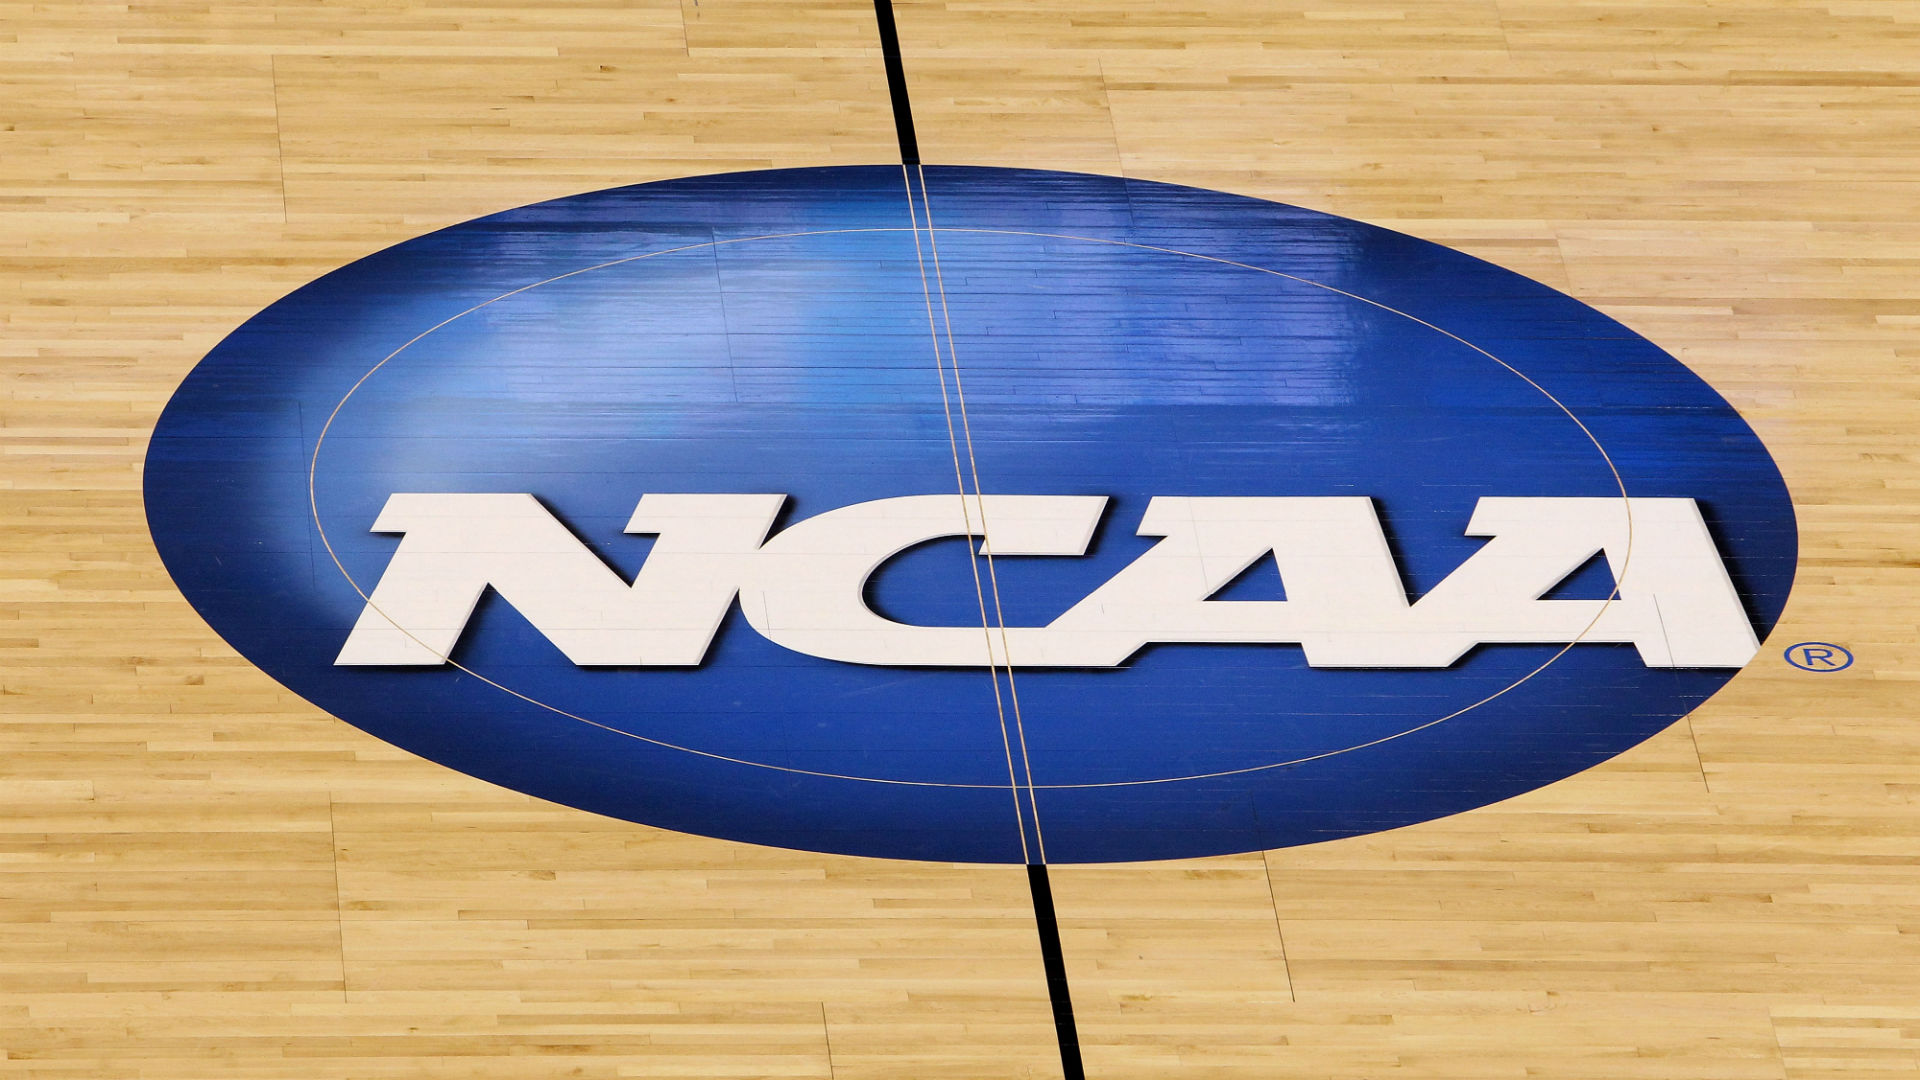 More than 16,000 NCAA athletes eligible to receive payment in video game settlement